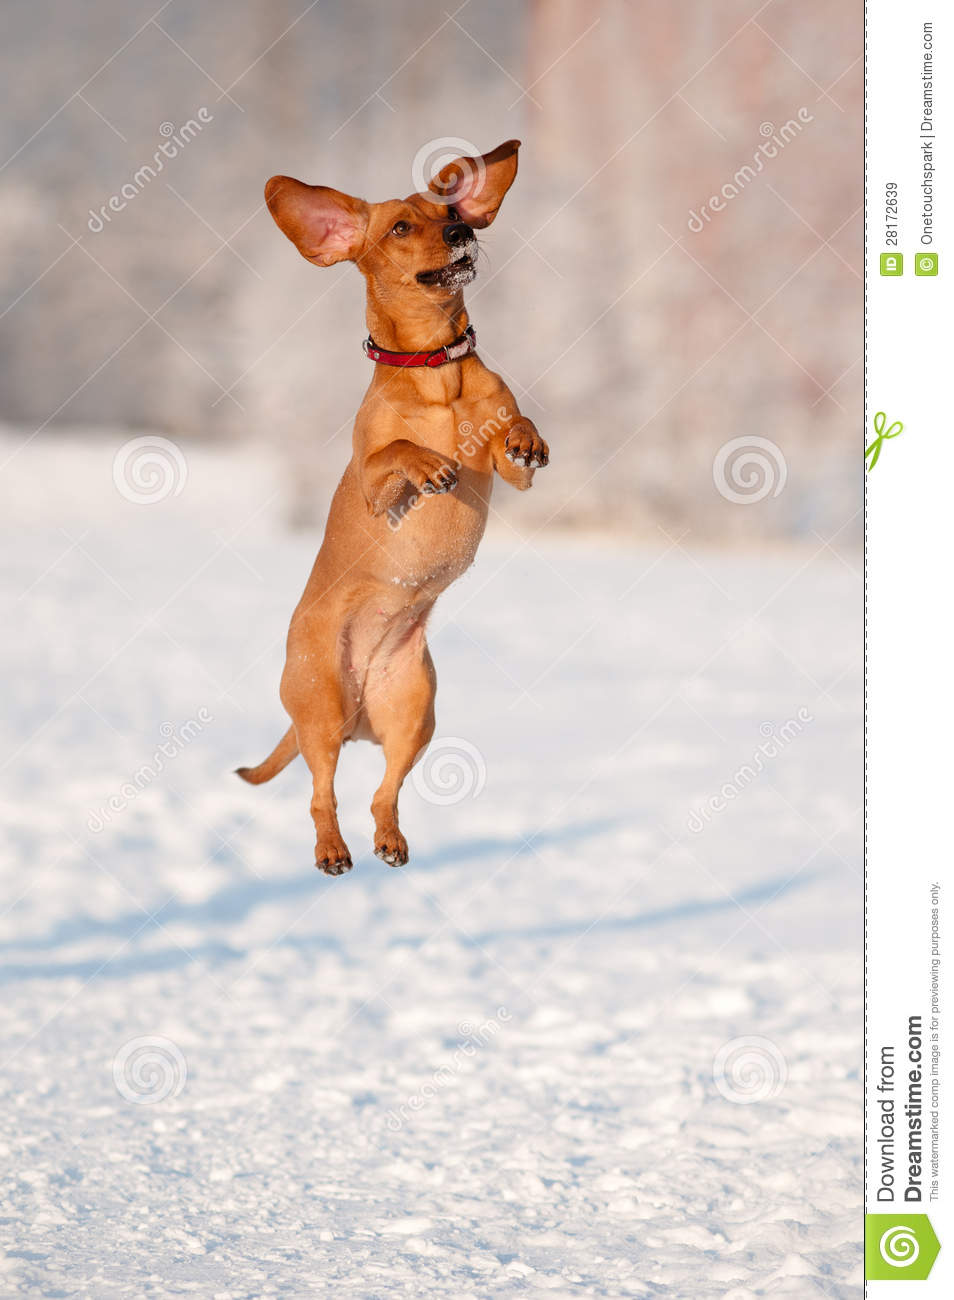 Dachshund Dog Jumping Up Royalty Free Stock Images - Image ...